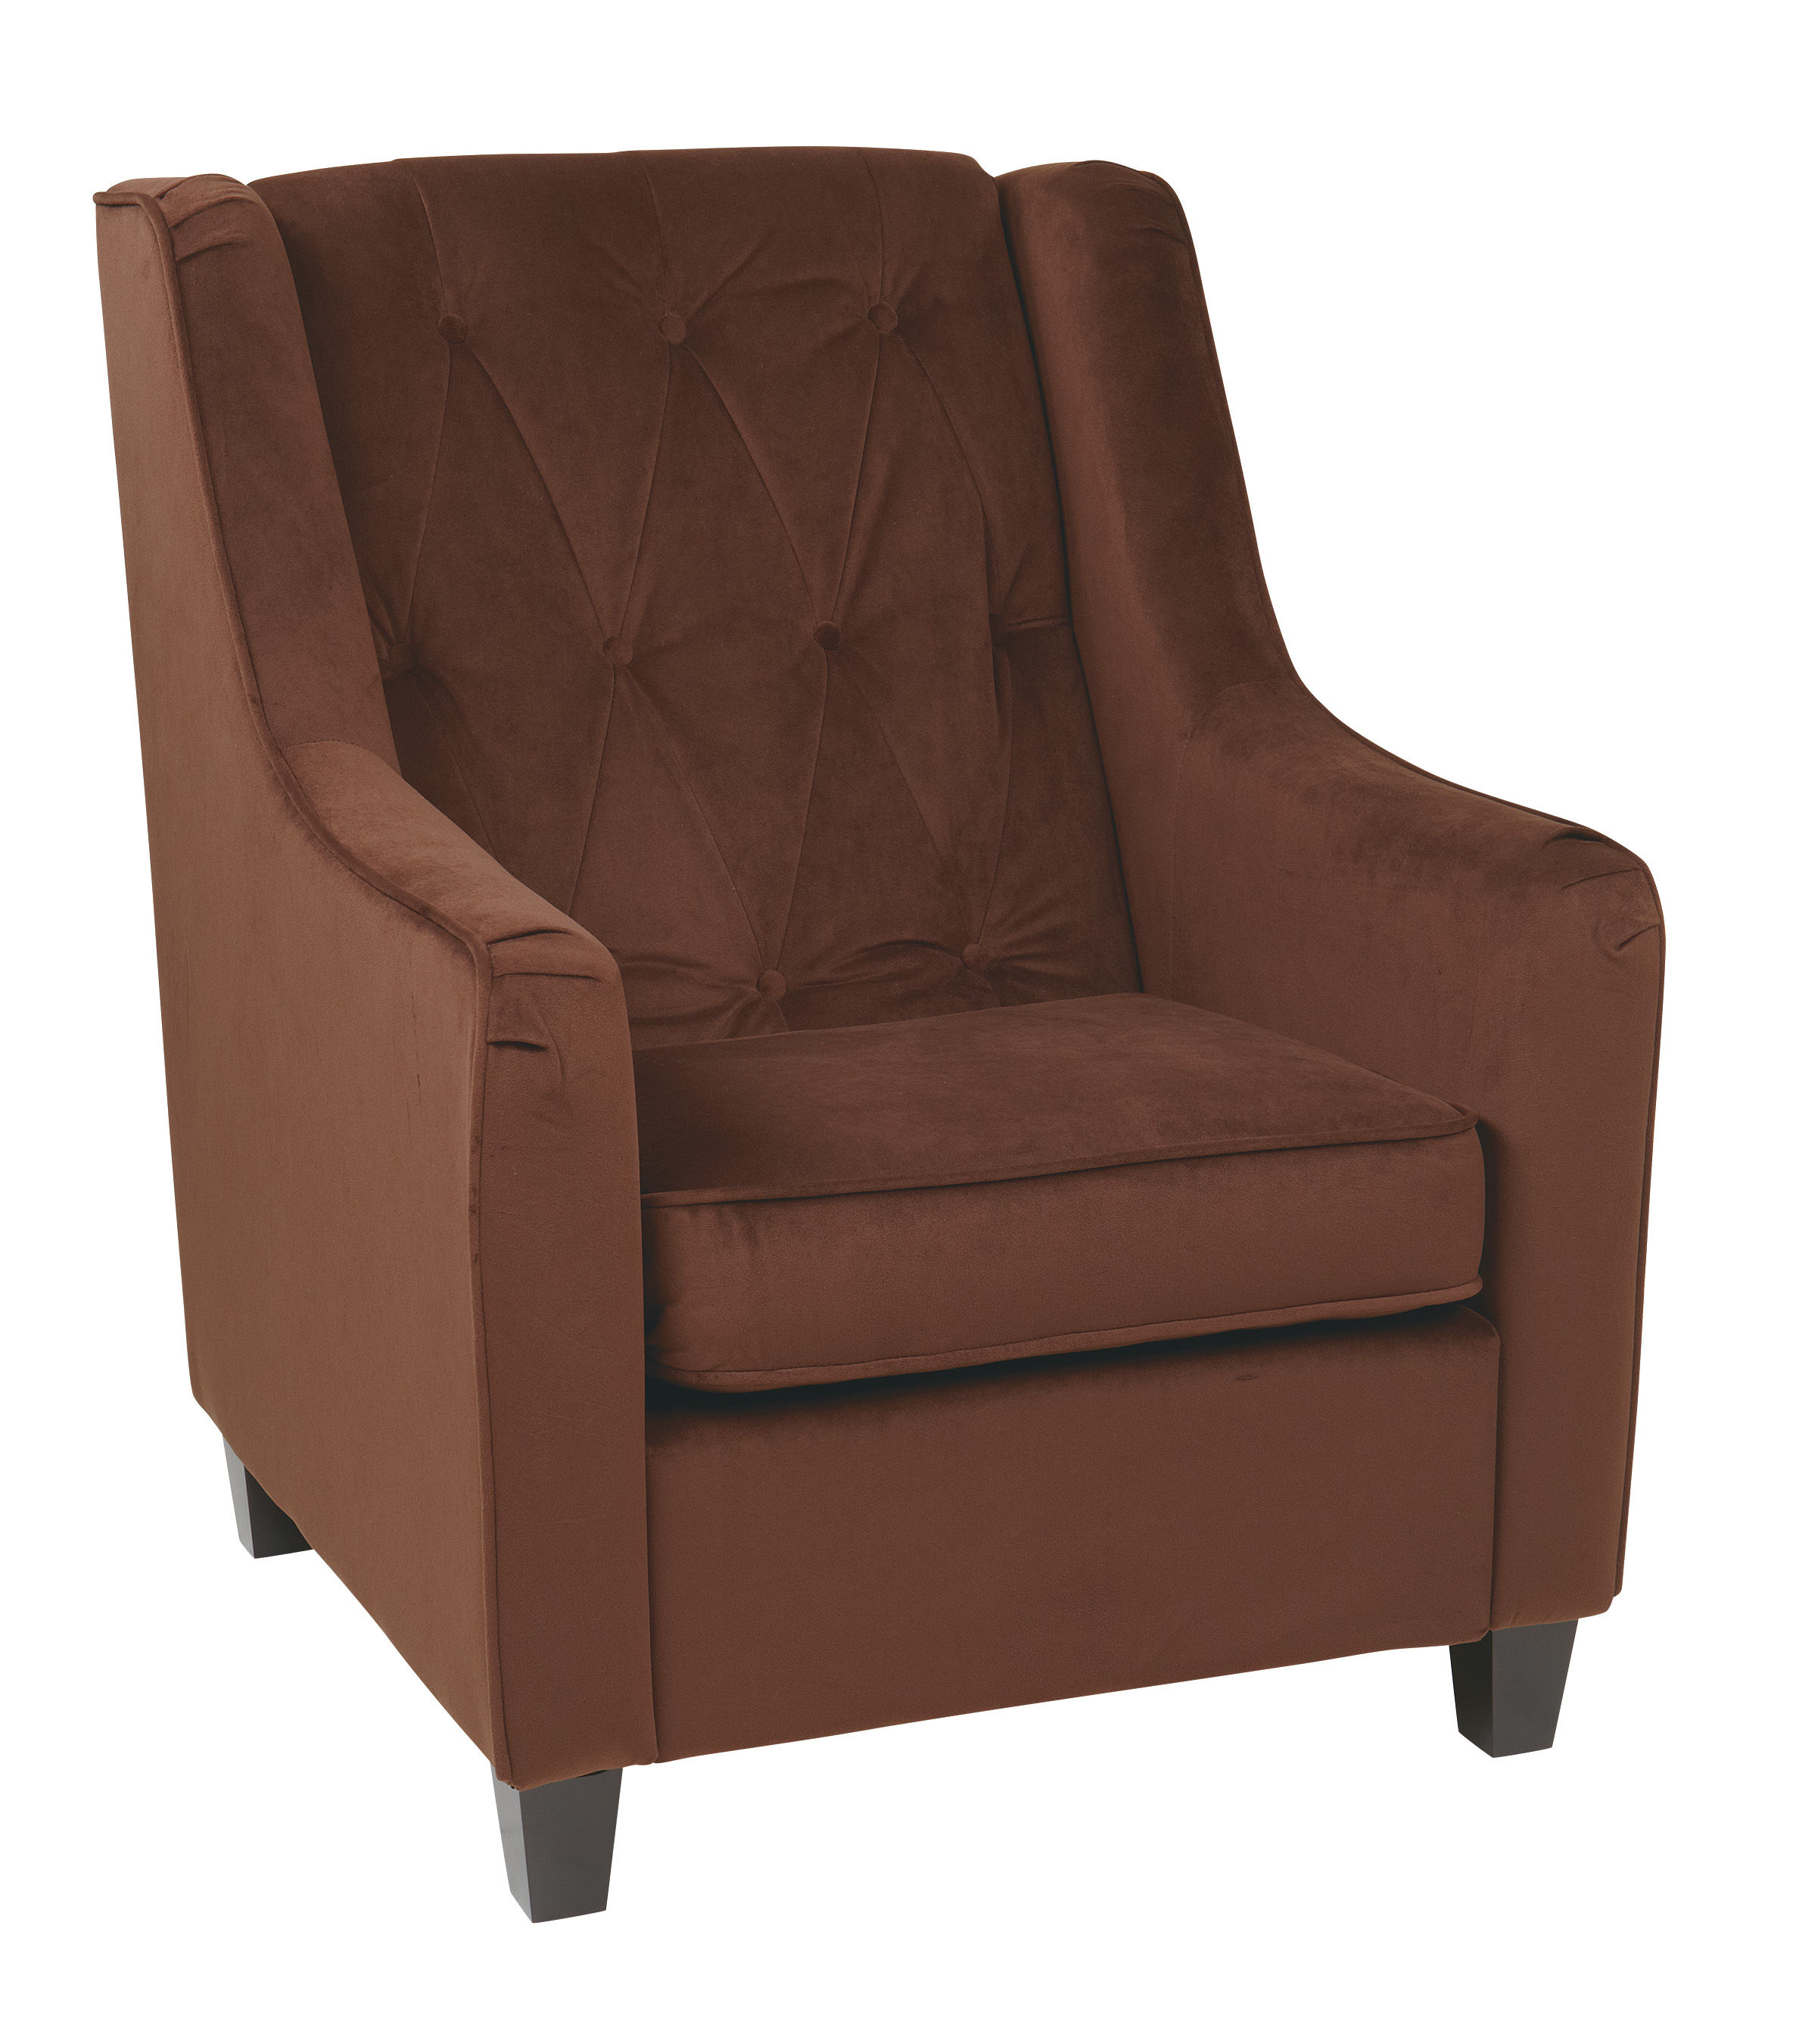 Curves Modern Chocolate Fabric Solid Wood Tufted Back